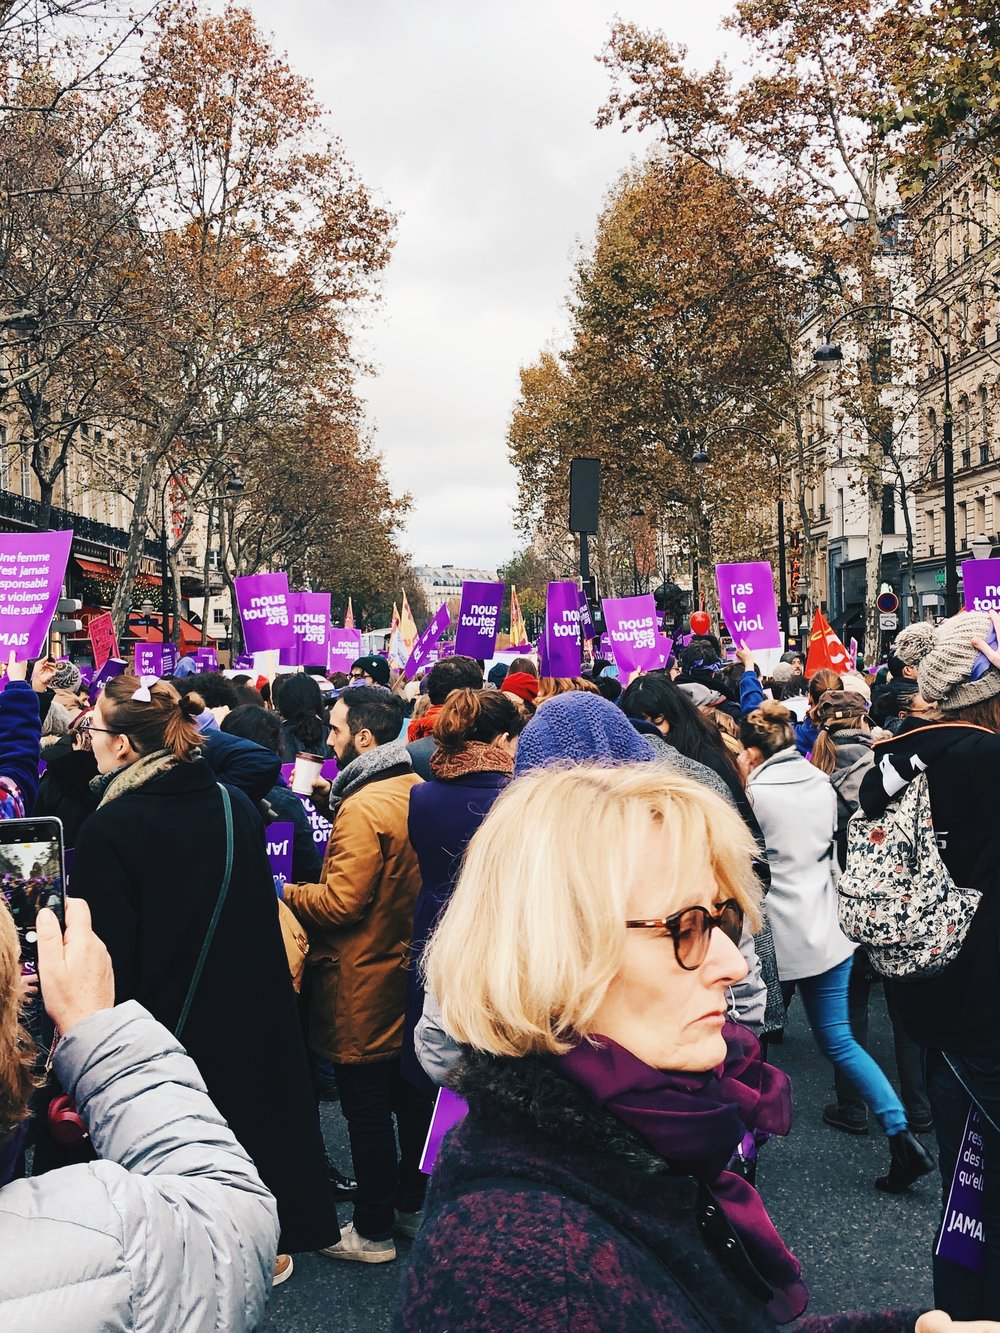 12 Top Travel Moments of 2018- Women's March in Paris